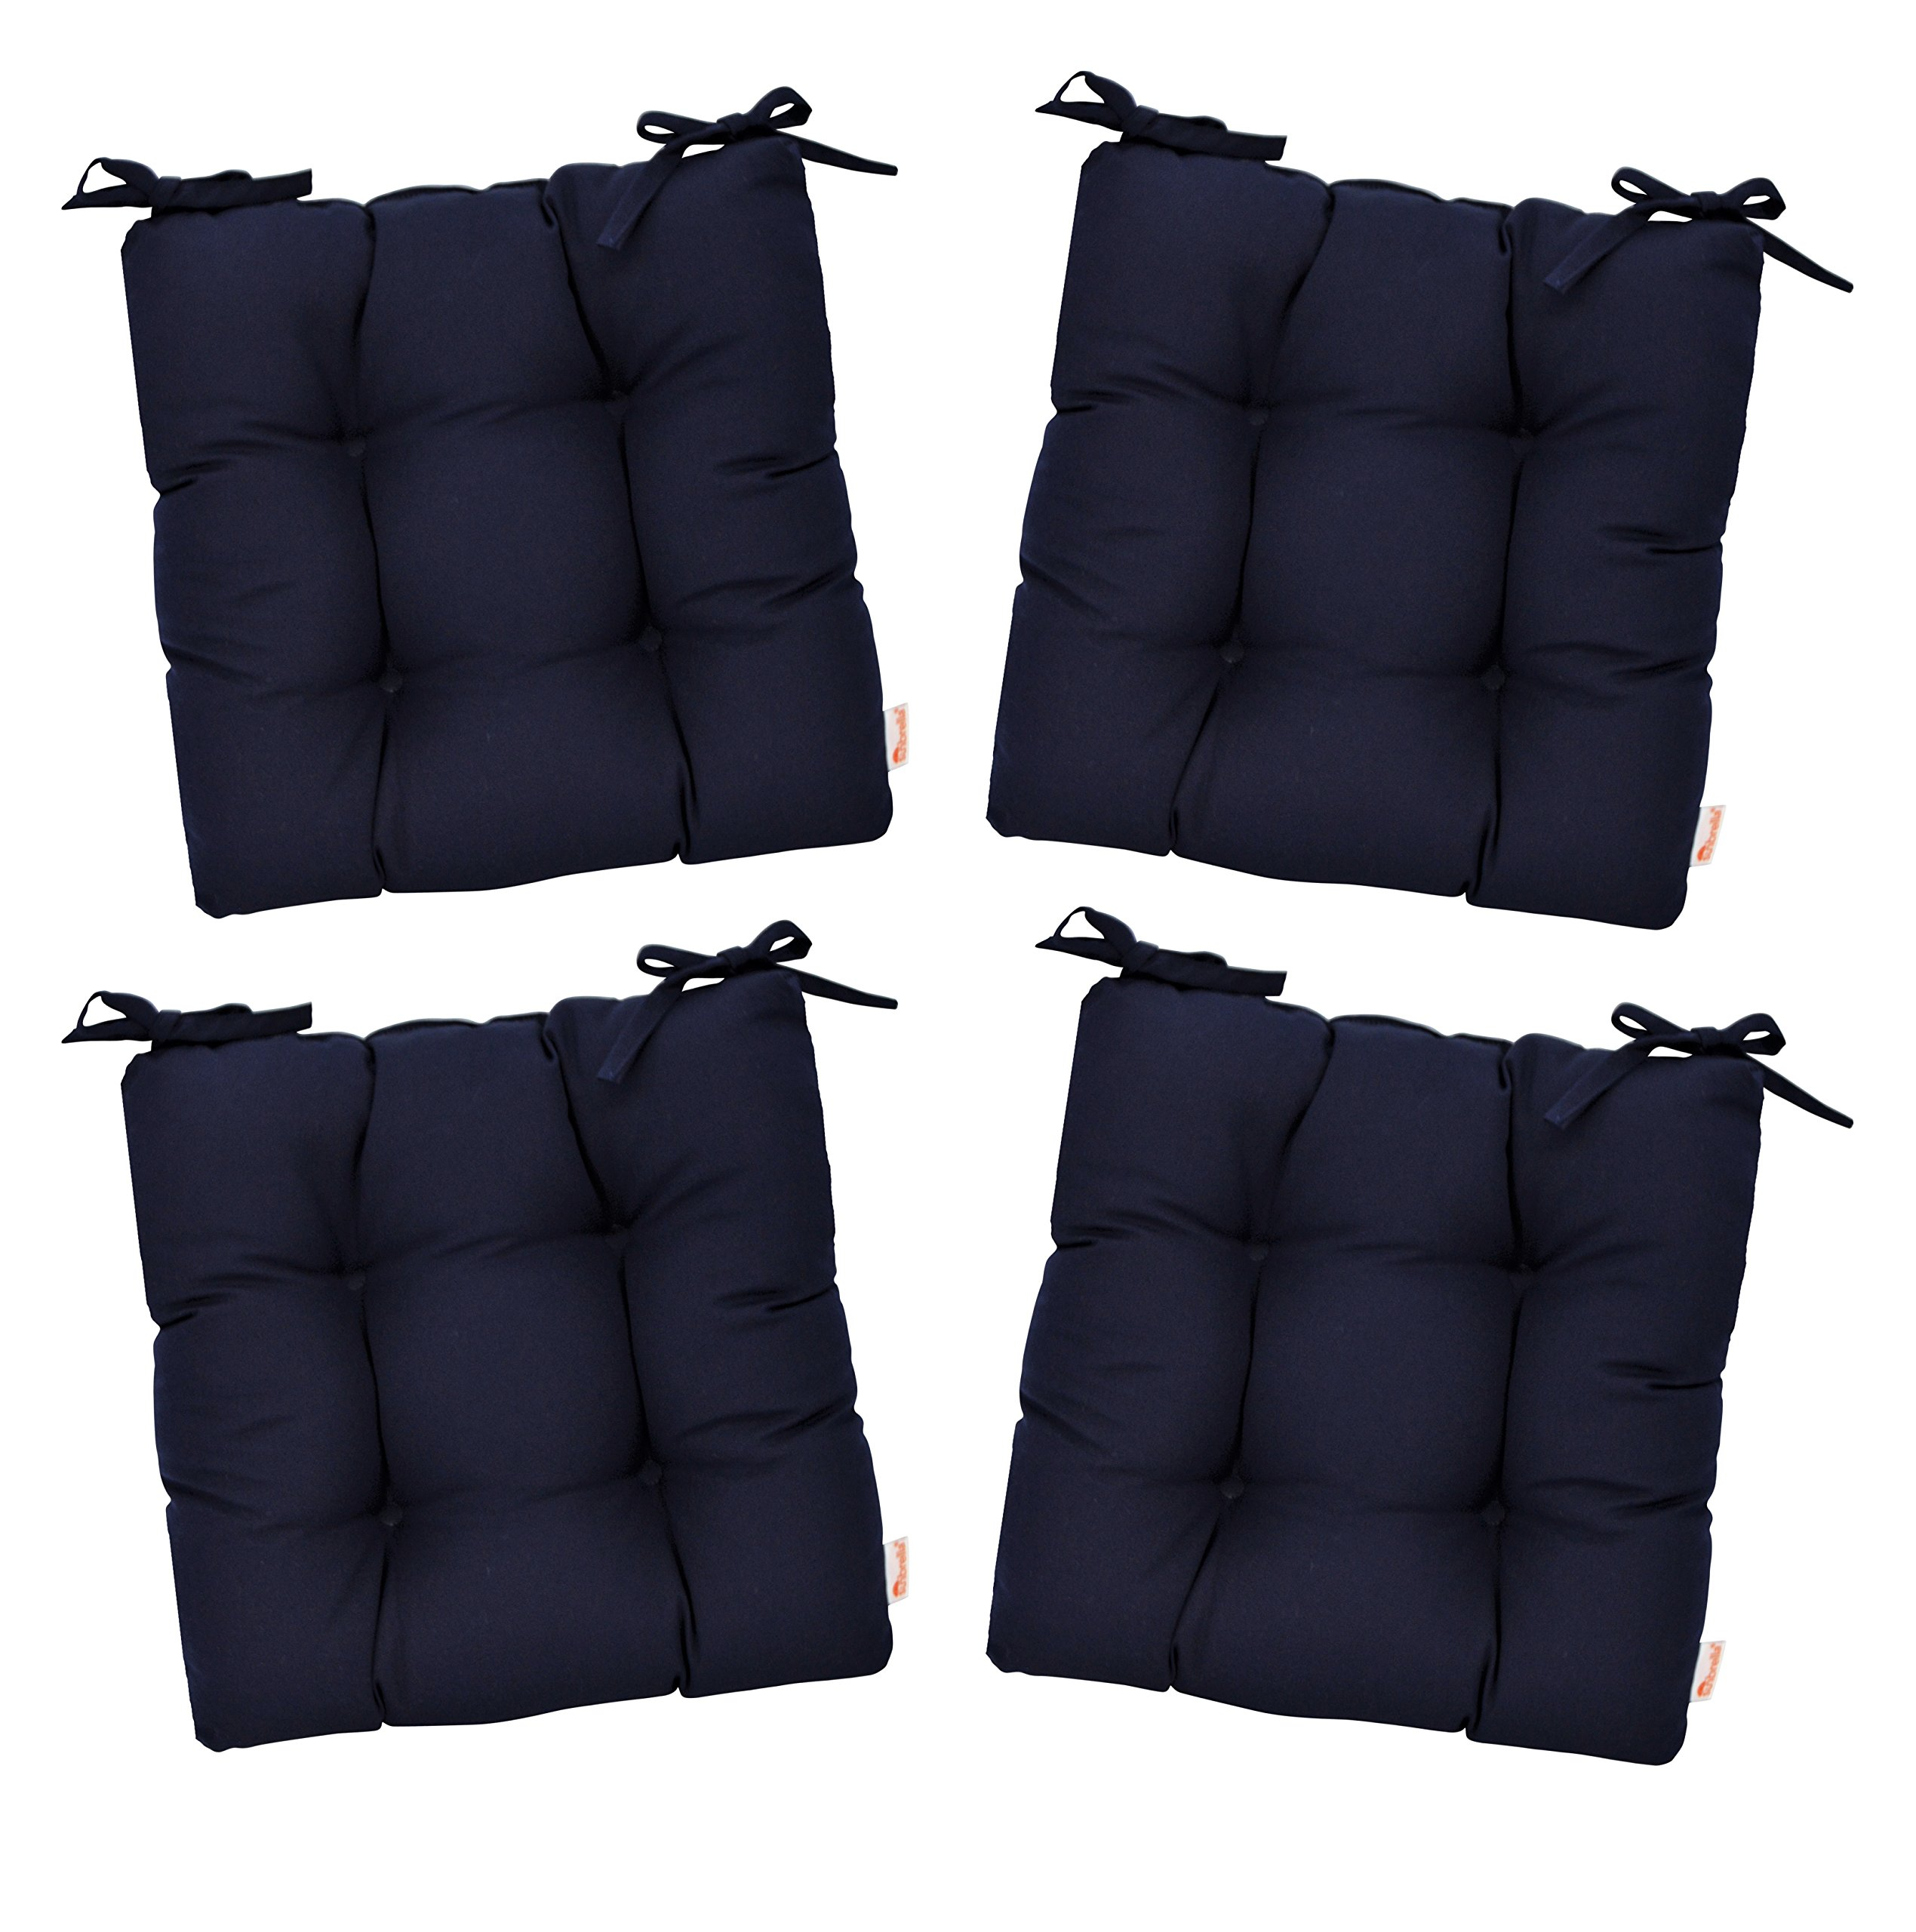 "RSH Décor Set of 4 - Indoor/Outdoor Sunbrella Canvas Navy Blue Tufted Seat Cushions with Ties for Dining/Patio Chairs (16"" x 16"")"